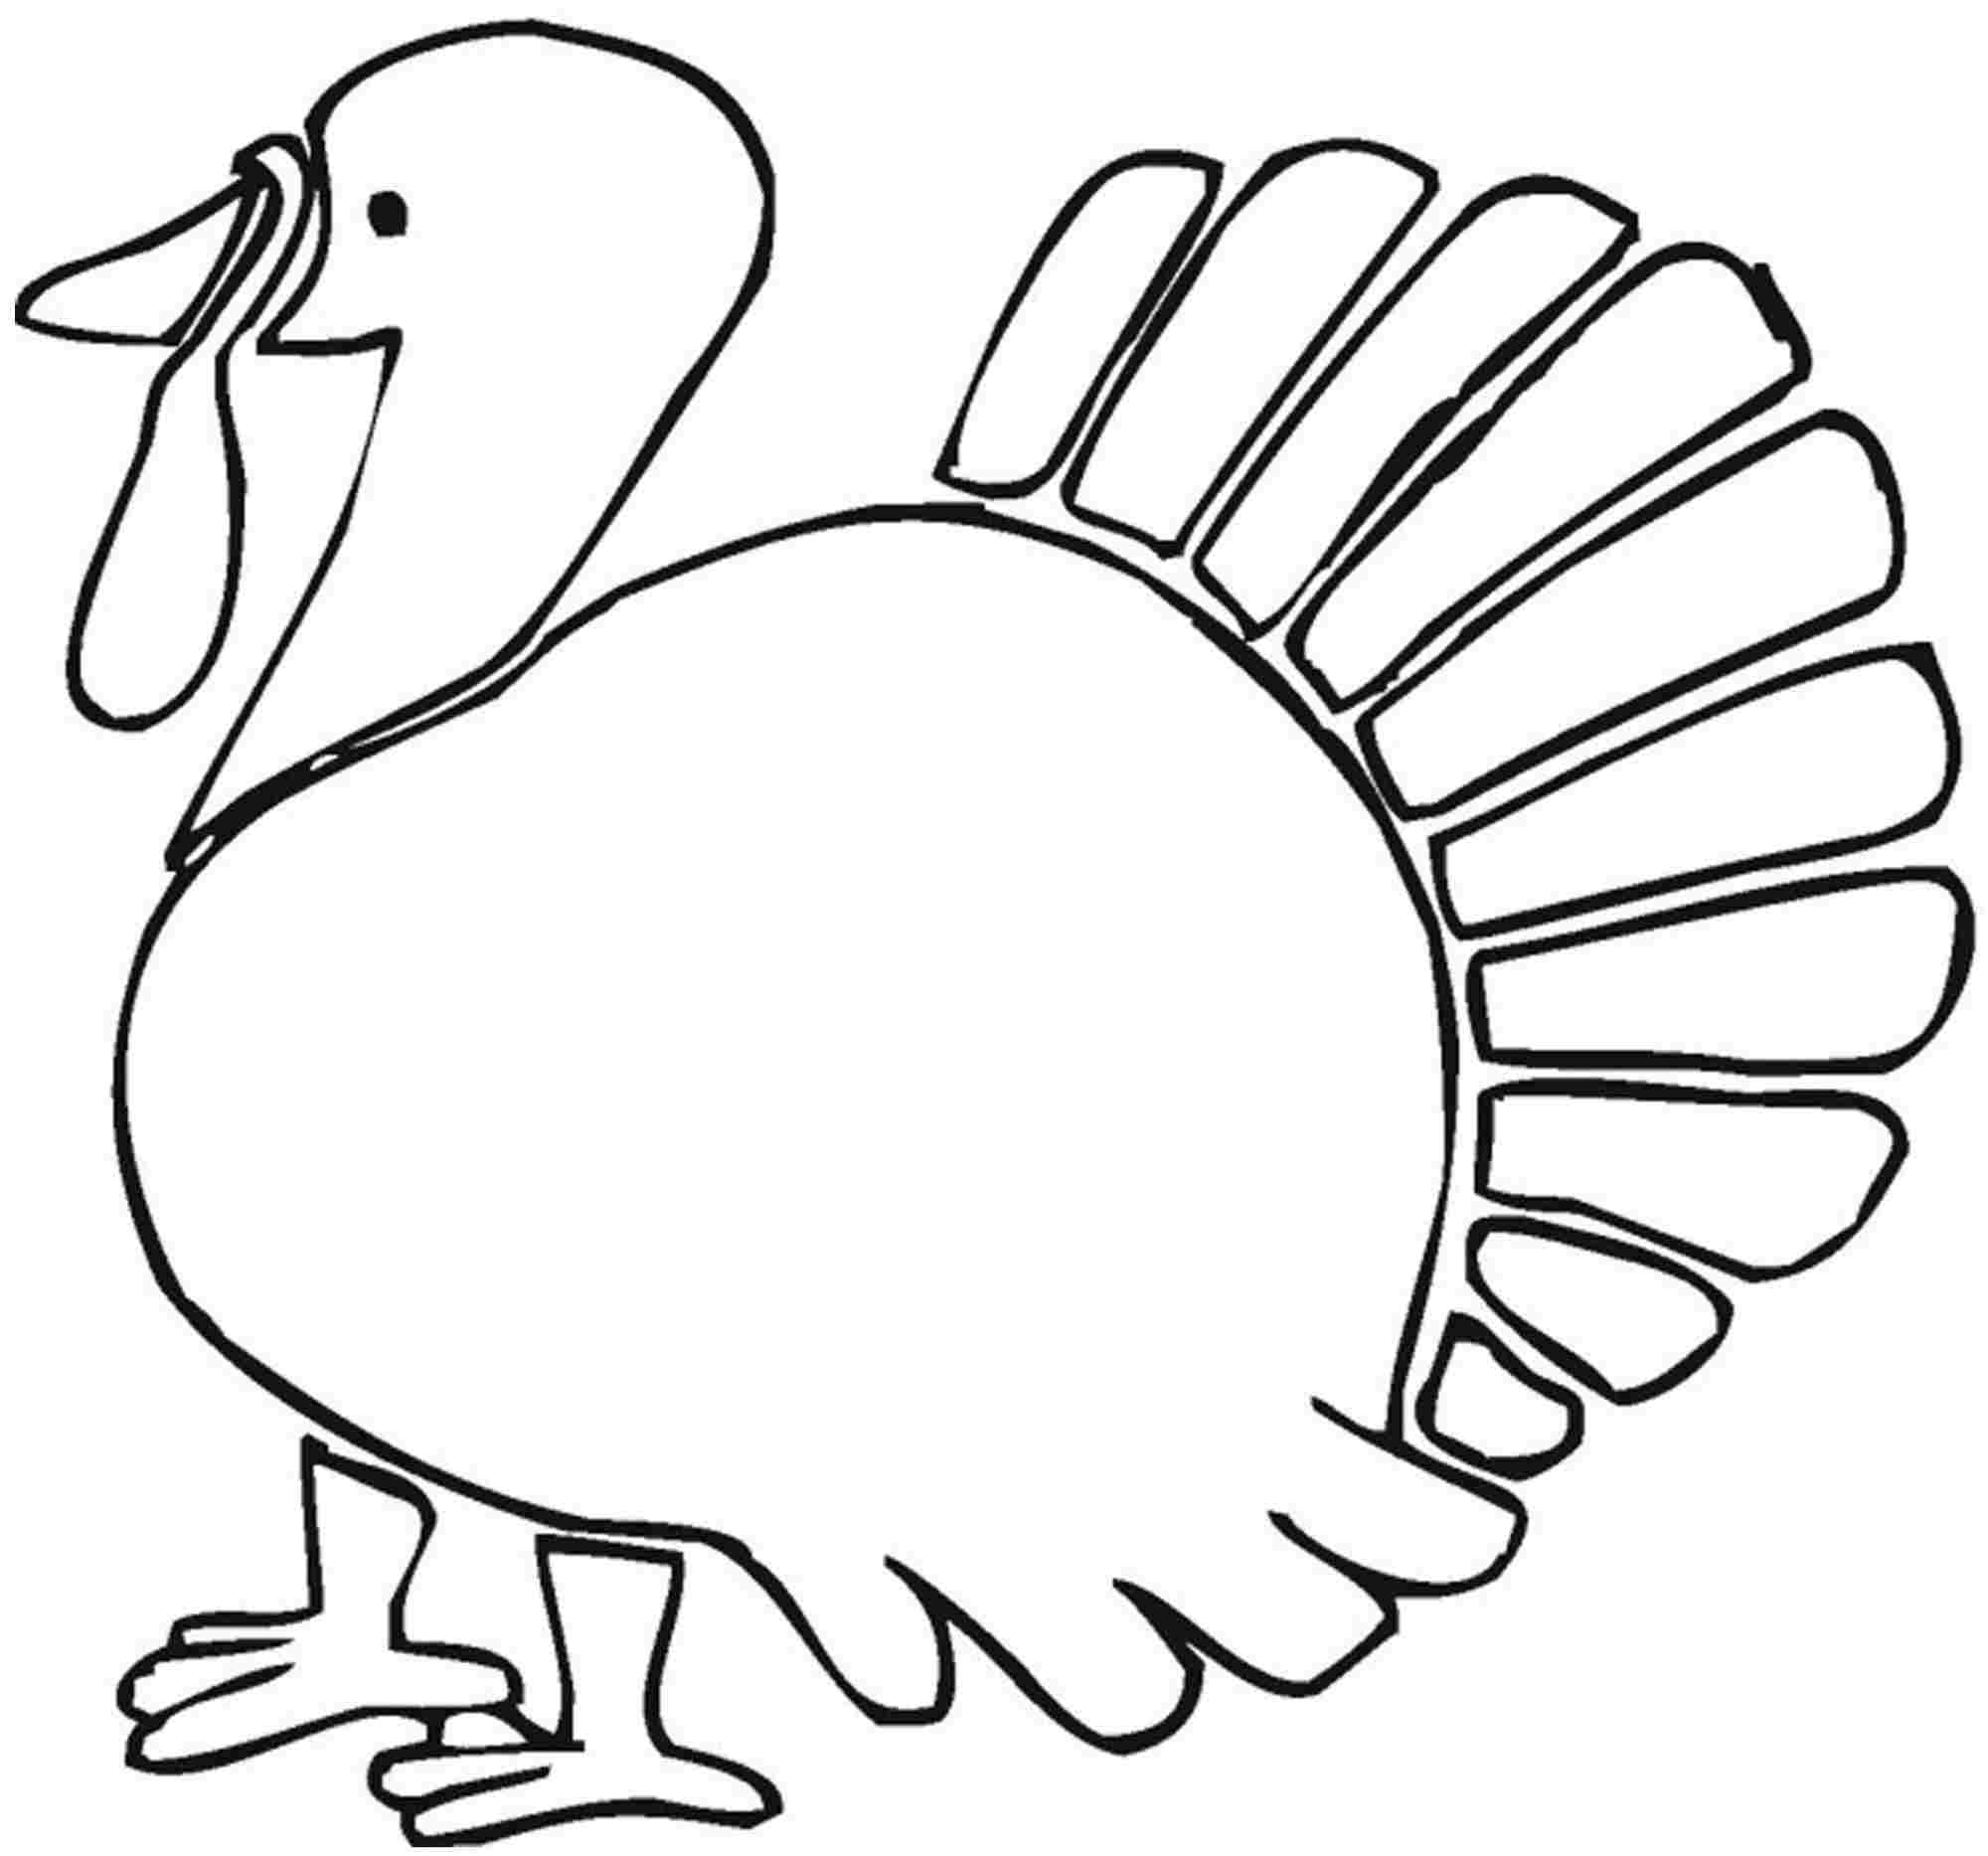 getdrawings.com/images/turkey-drawing-template-12....